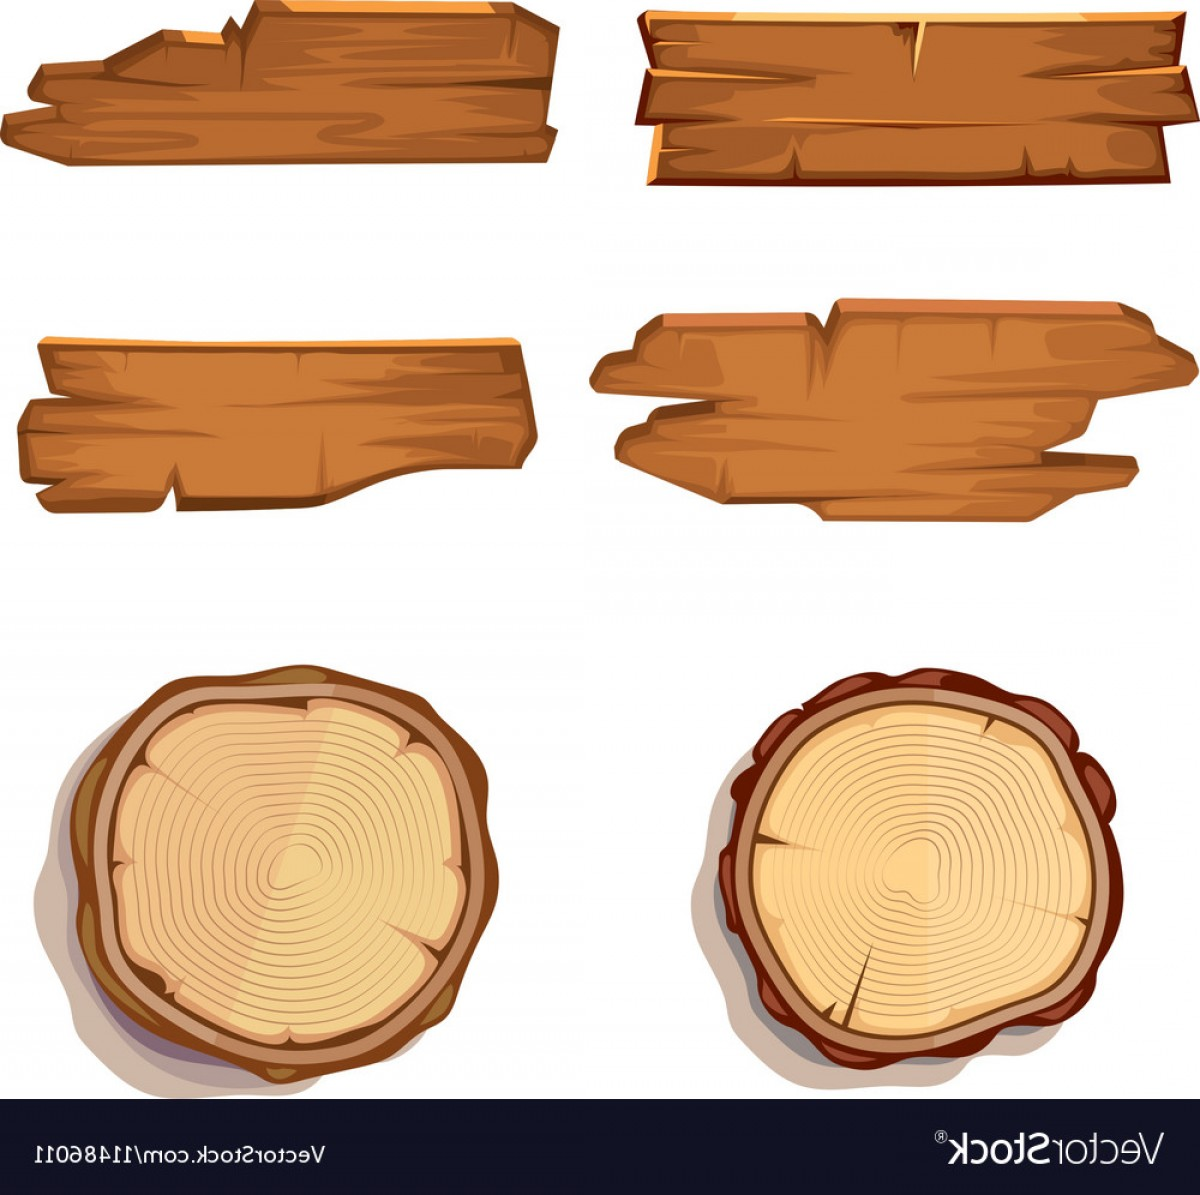 Wood Plank Vector Art: Old Wooden Planks And Saw Cut Tree Trunk Vector